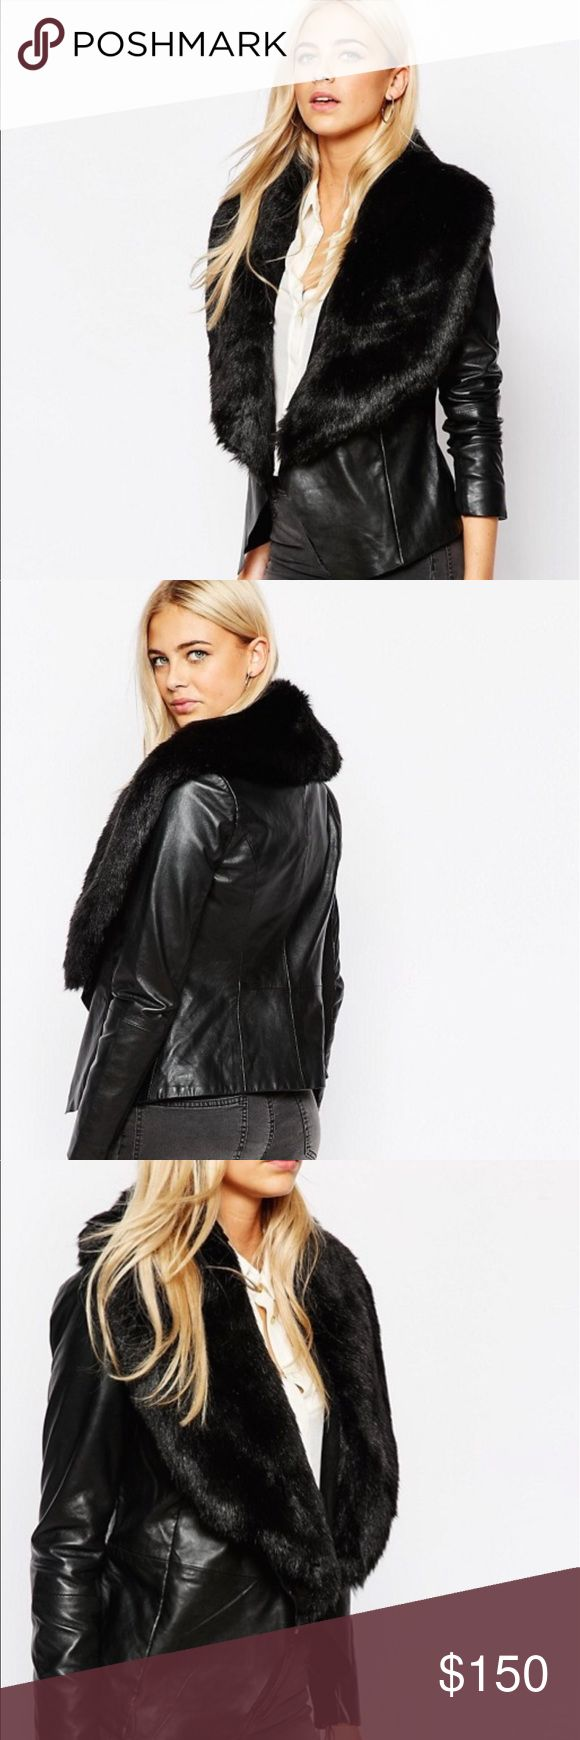 Oasis leather fur jacket size small Purchase on asos 100% real leather Oasis Jackets & Coats